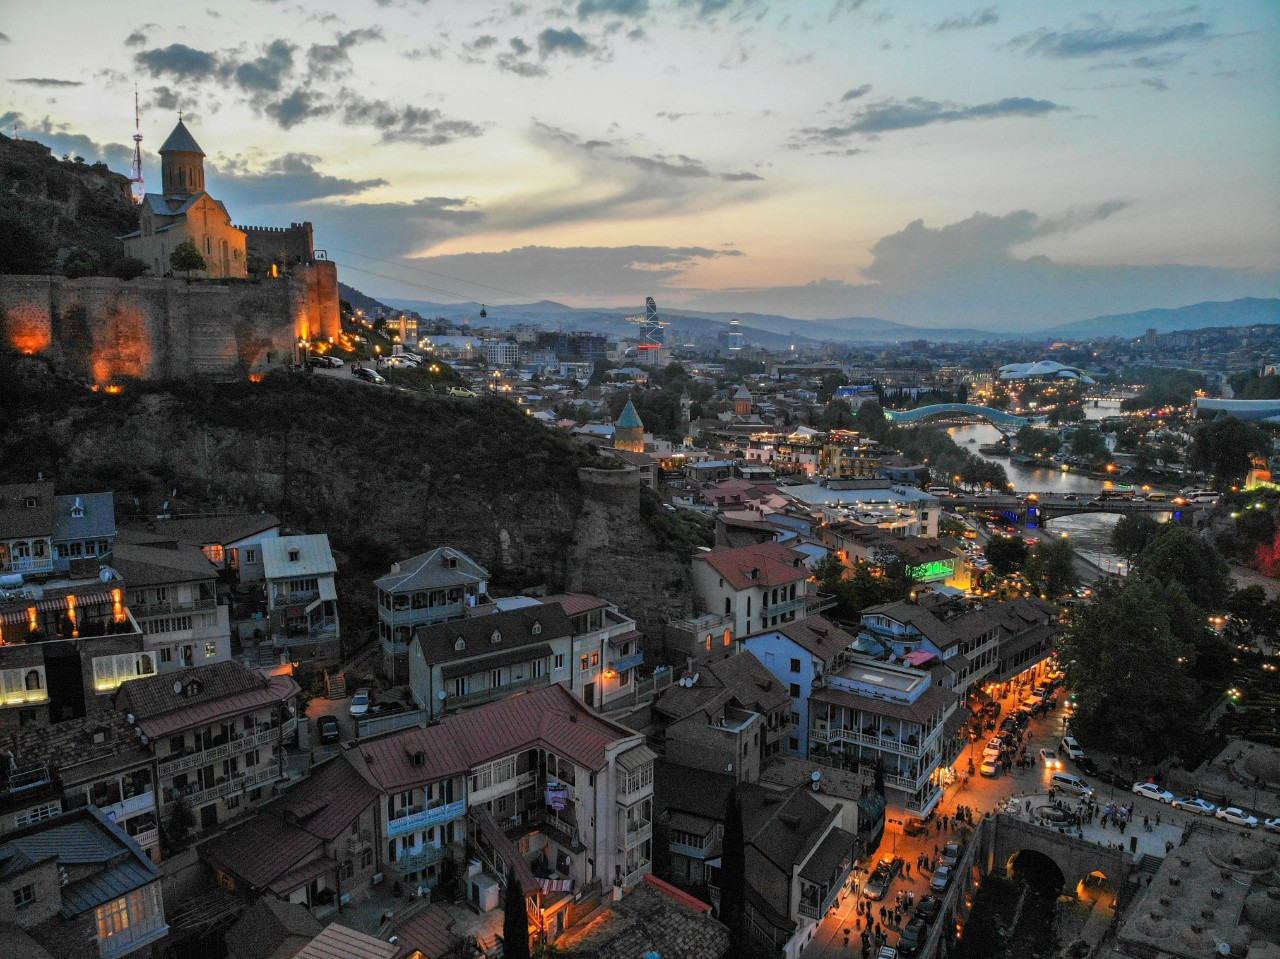 A Travel Guide to Tbilisi Can Help You Have a Better Georgian Holiday